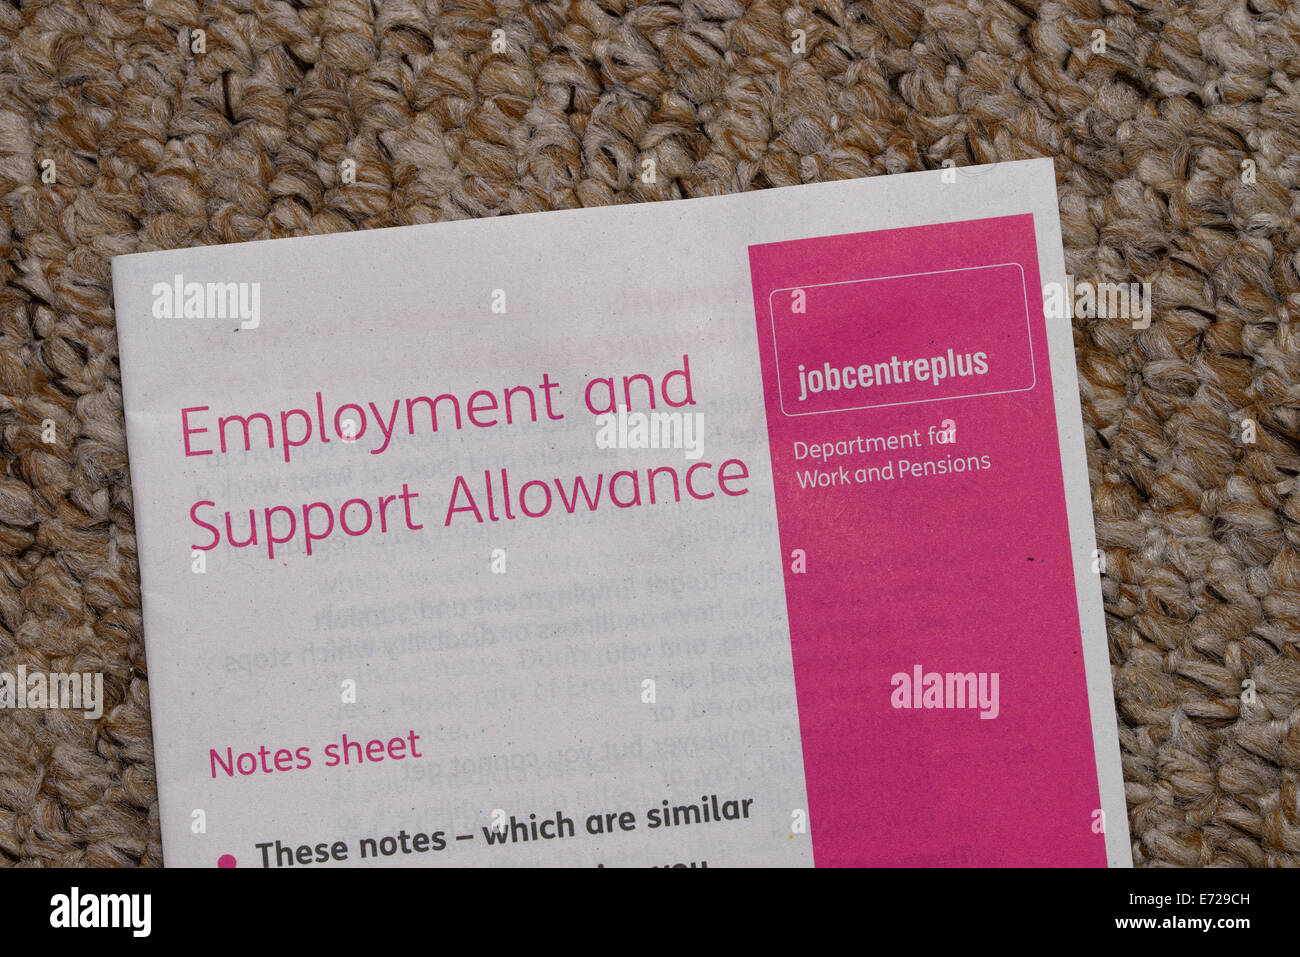 Notes sheet to accompany an Employment and Support Allowance (ESA) application form - Stock Image